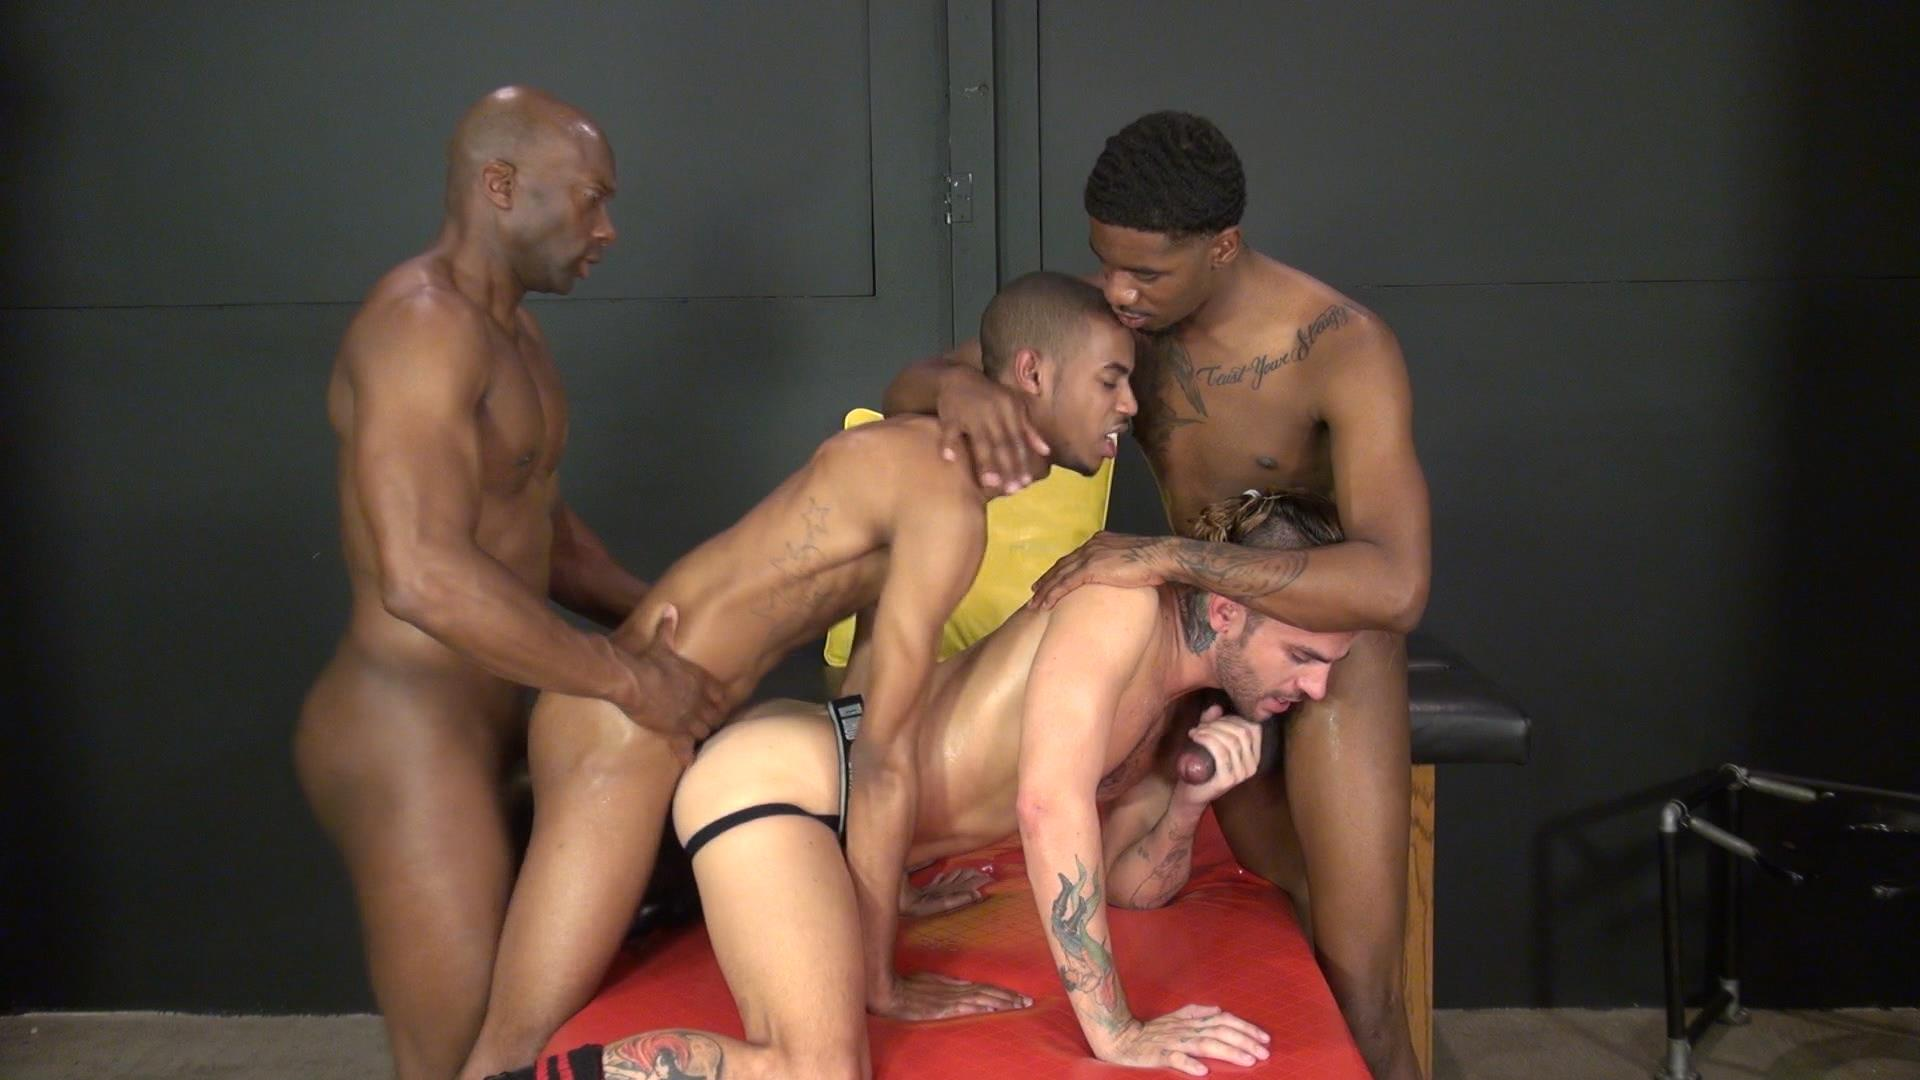 Raw-and-Rough-Champ-Robinson-Lukas-Cipriani-Knockout-Tigger-Redd-BBBH-Amateur-Gay-Porn-10 White Boy Gets A Breeding By Three Big Black Dicks